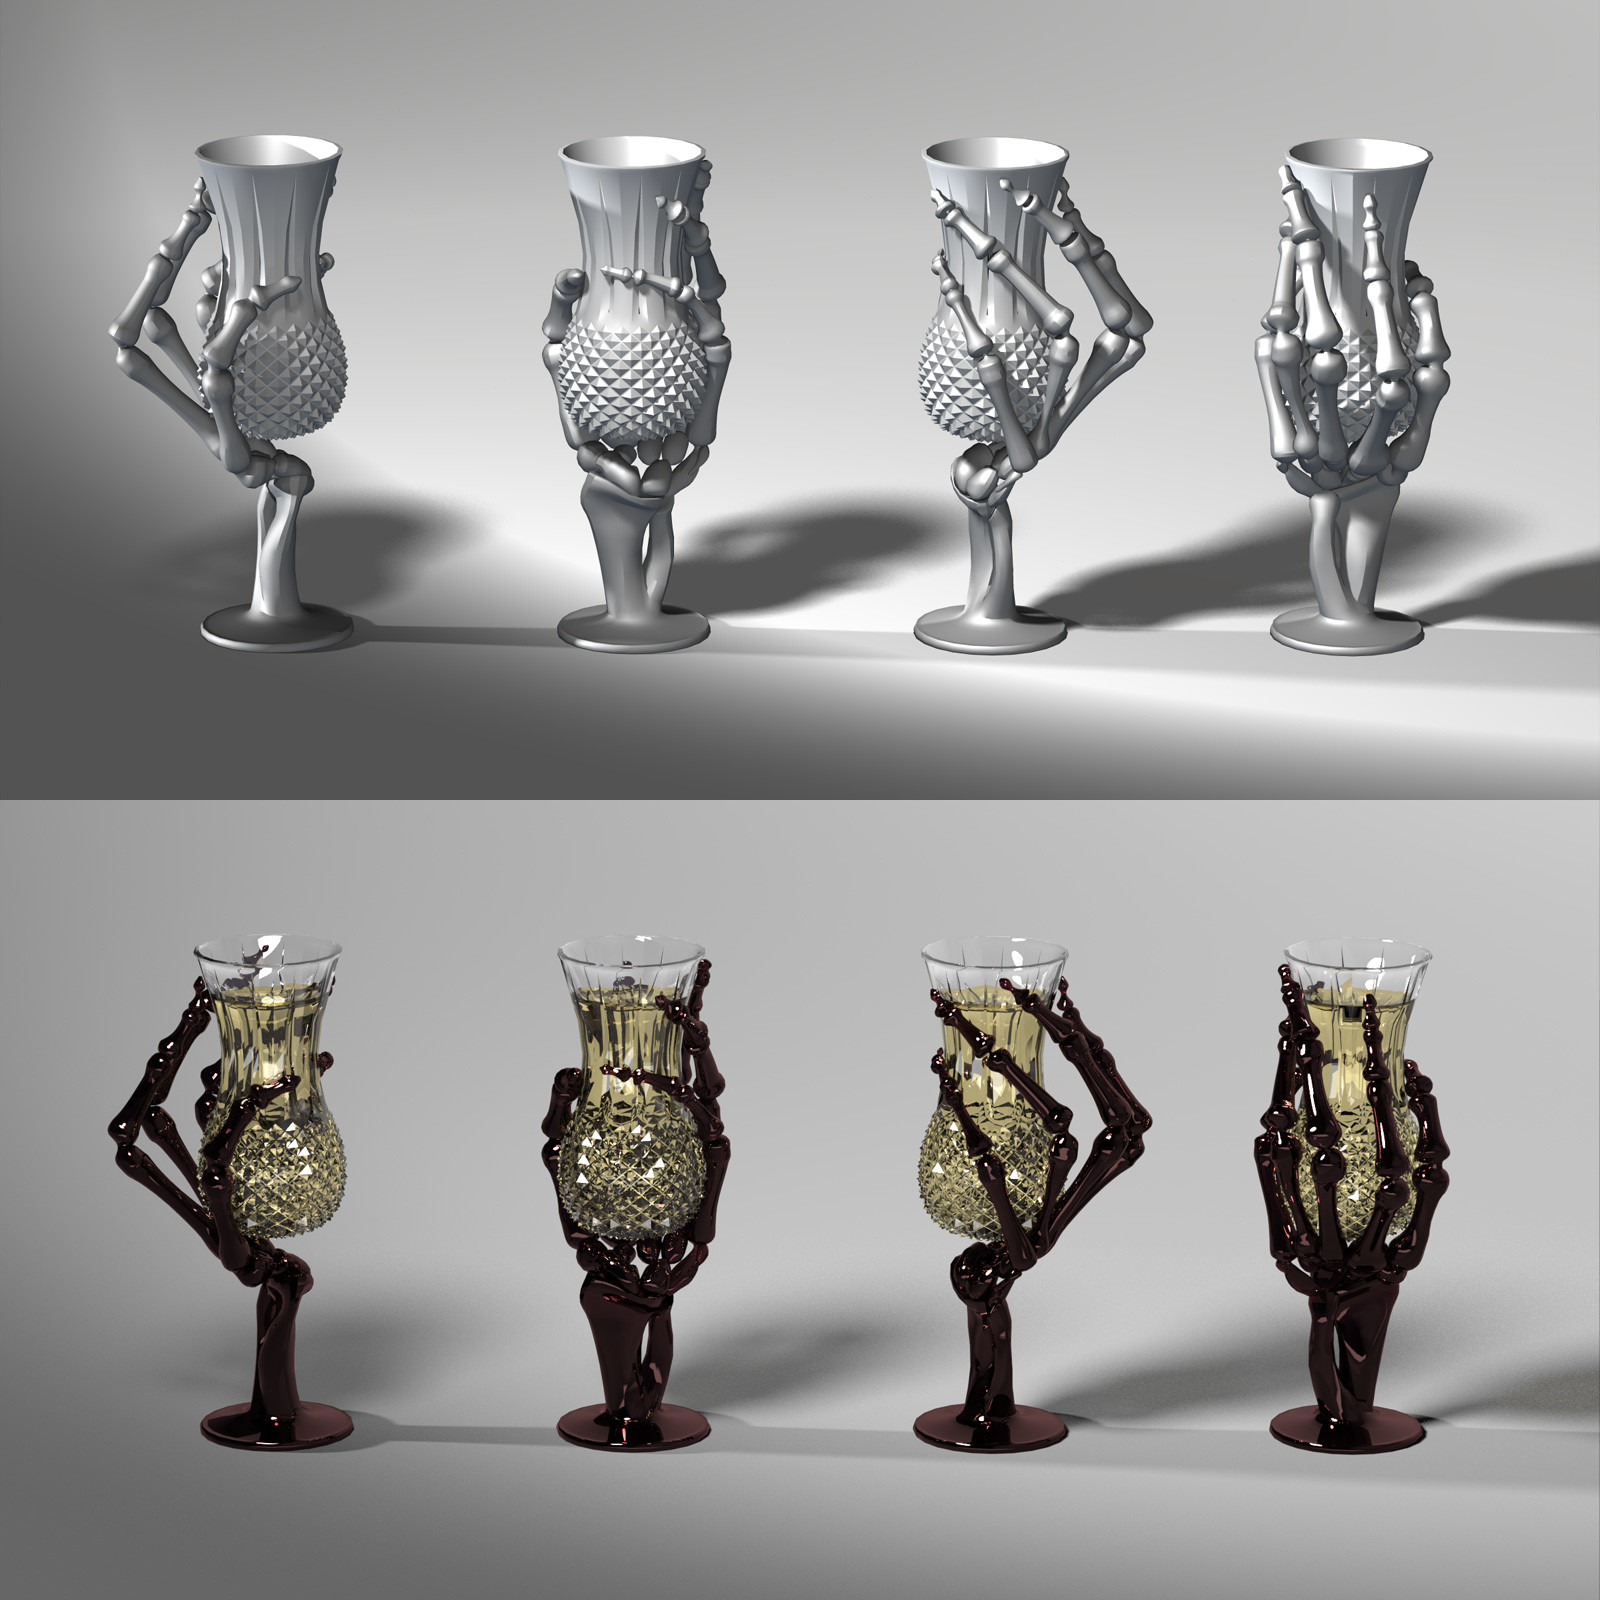 This is a 360 degree turnaround of the champagne flute, rendered in SuperFly/Cycles.